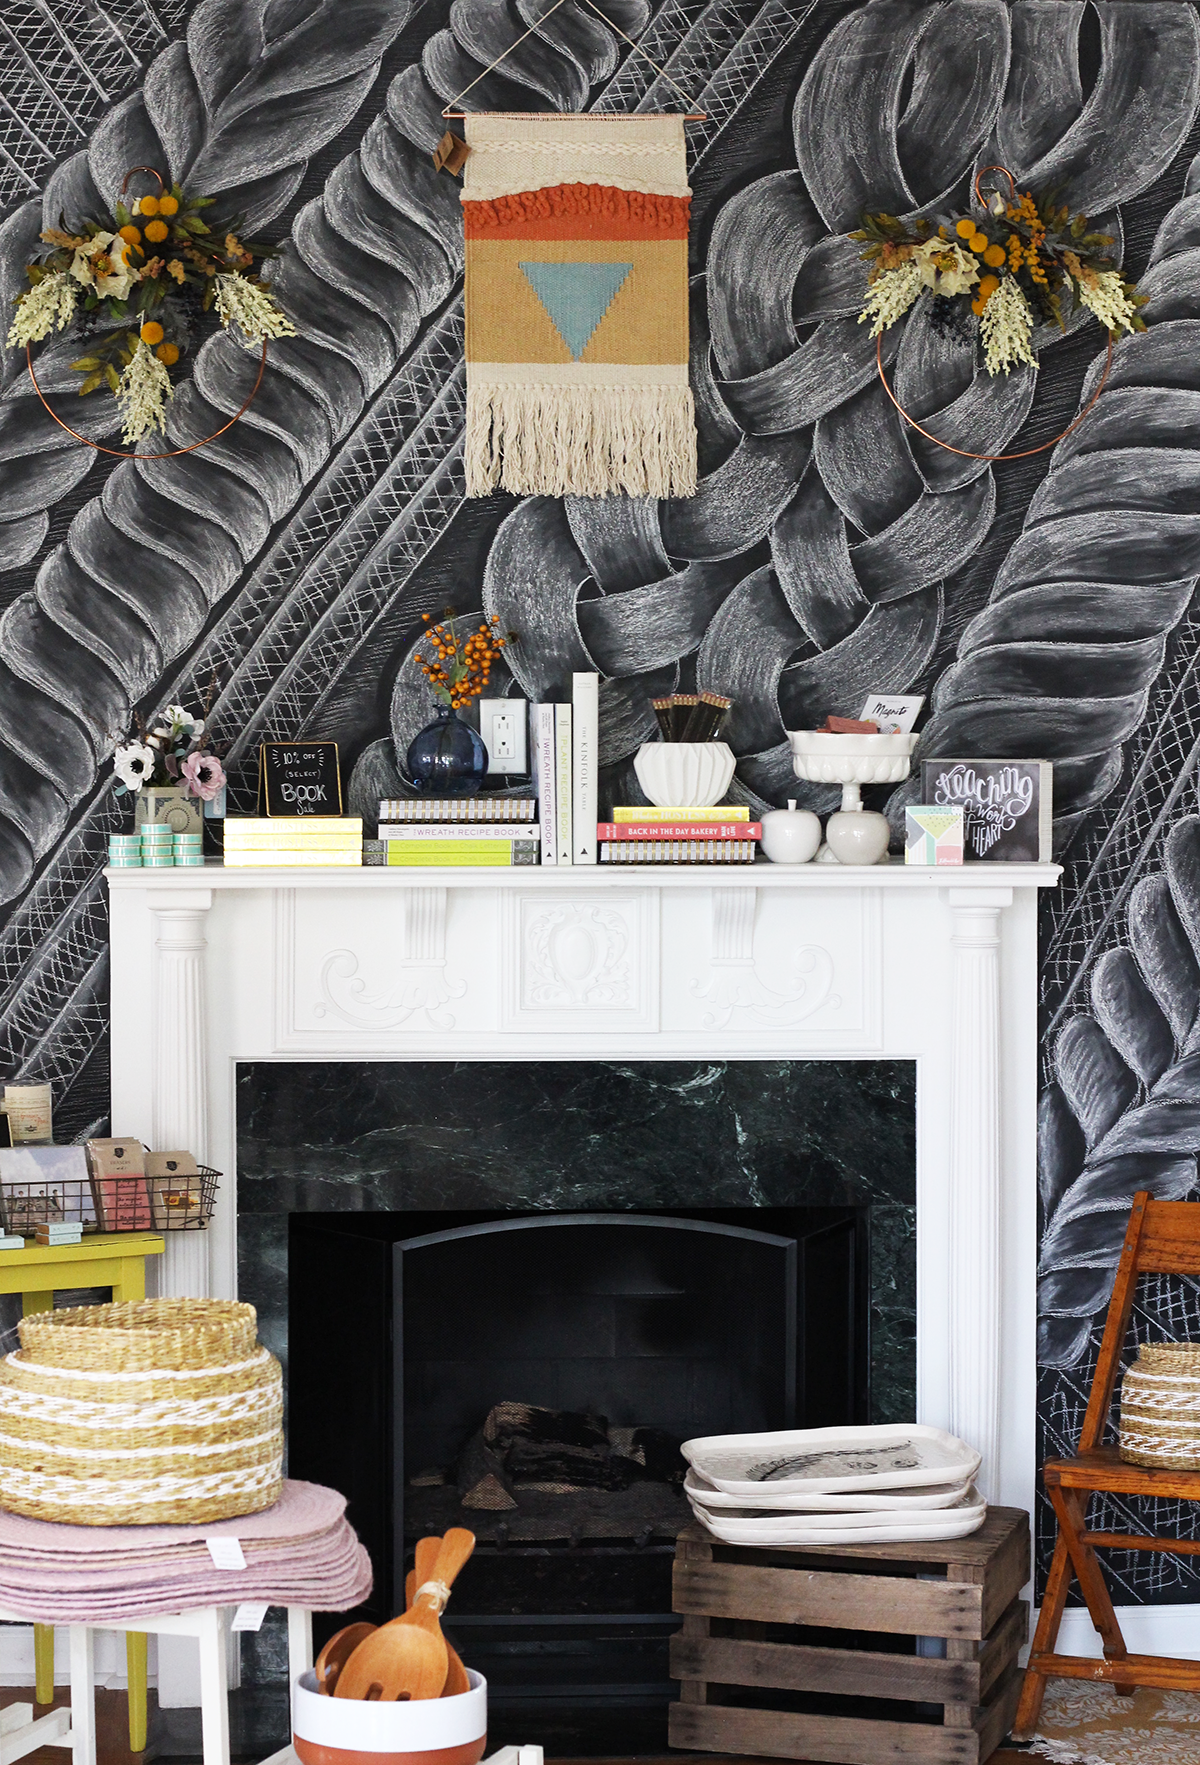 Valerie McKeehan drew a cable knit sweater in chalk on our chalkboard wall mantel at the Lily & Val Flagship Store